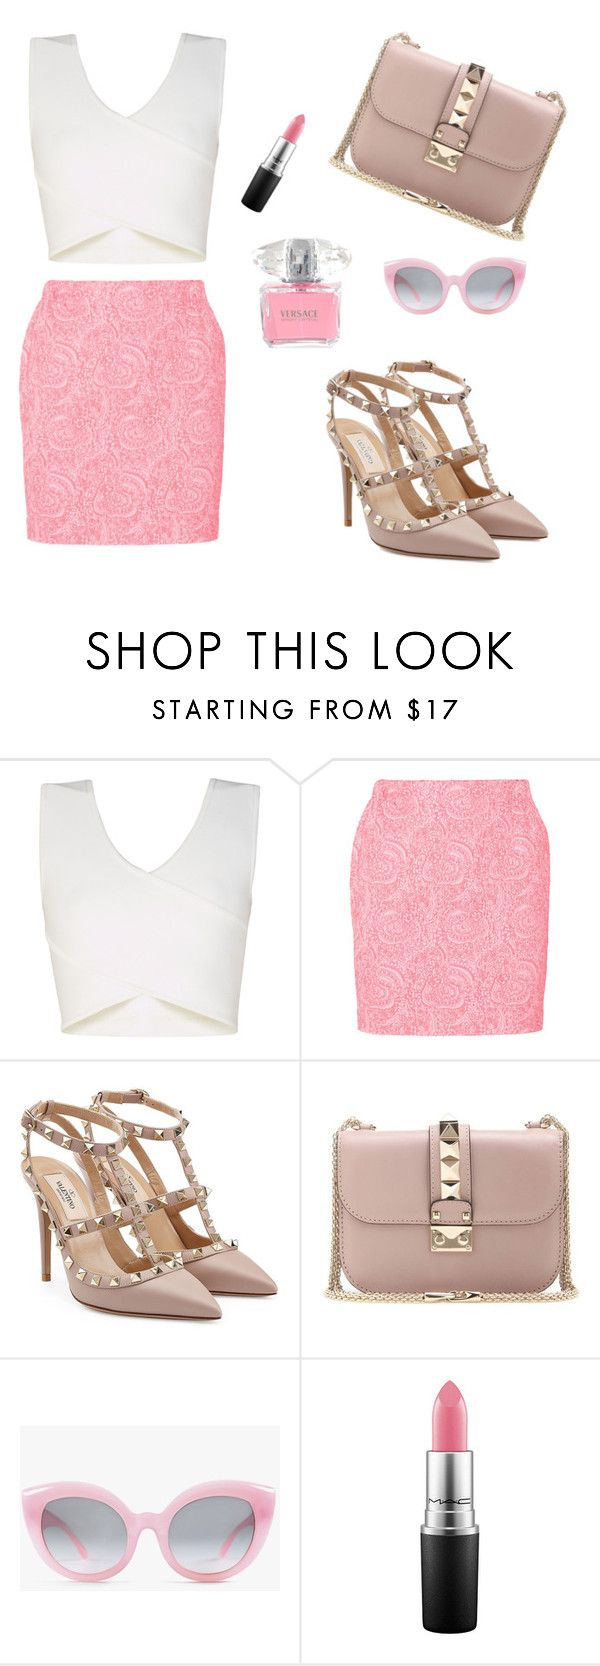 """Chanel Oberlin style "" by grintchristina ❤ liked on Polyvore featuring beauty, BCBGMAXAZRIA, Julien David, Valentino, Crap and Versace"